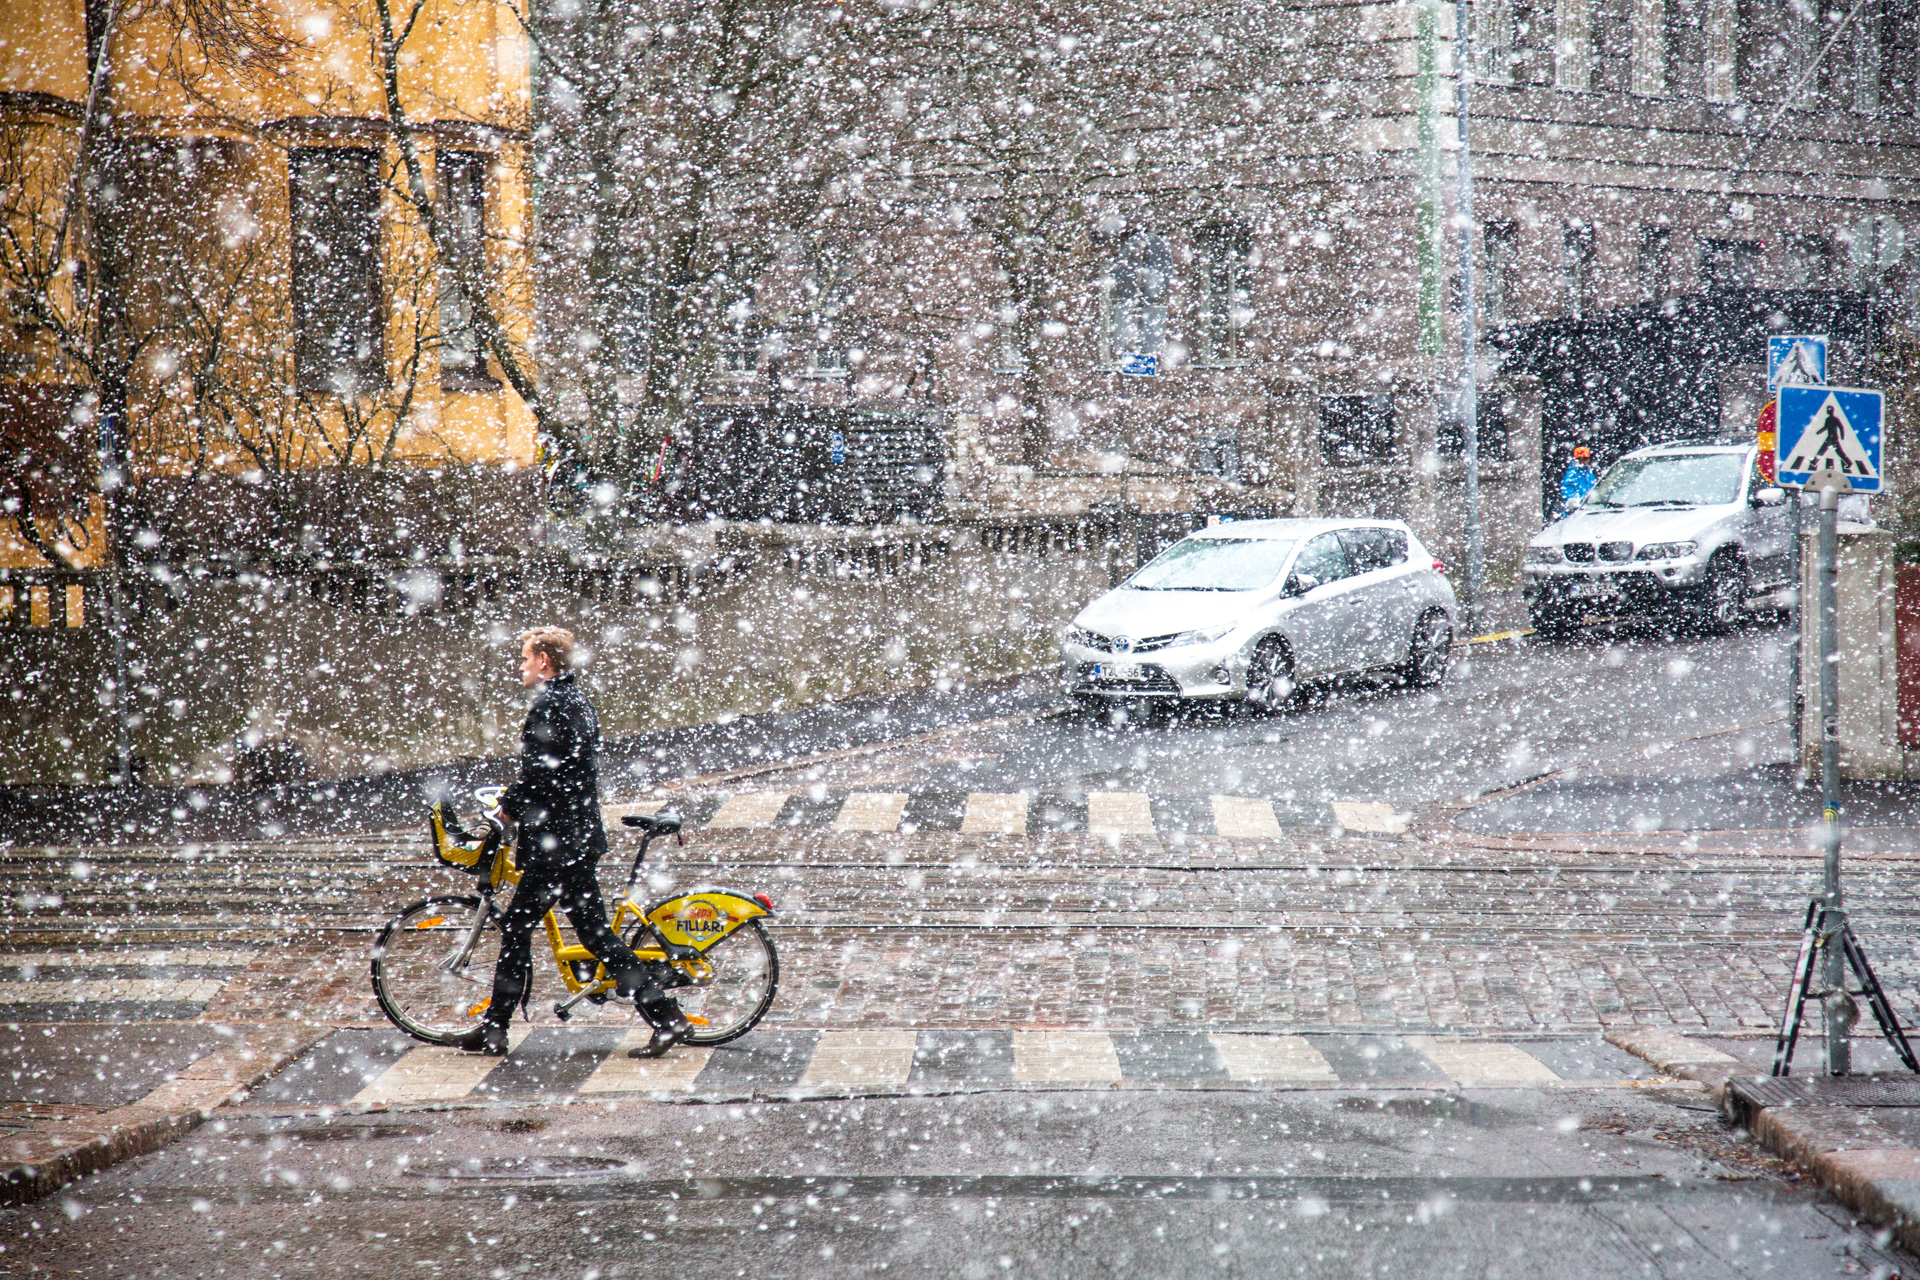 A heavy snowfall in May and a man crossing the street with an Alepa city bike.